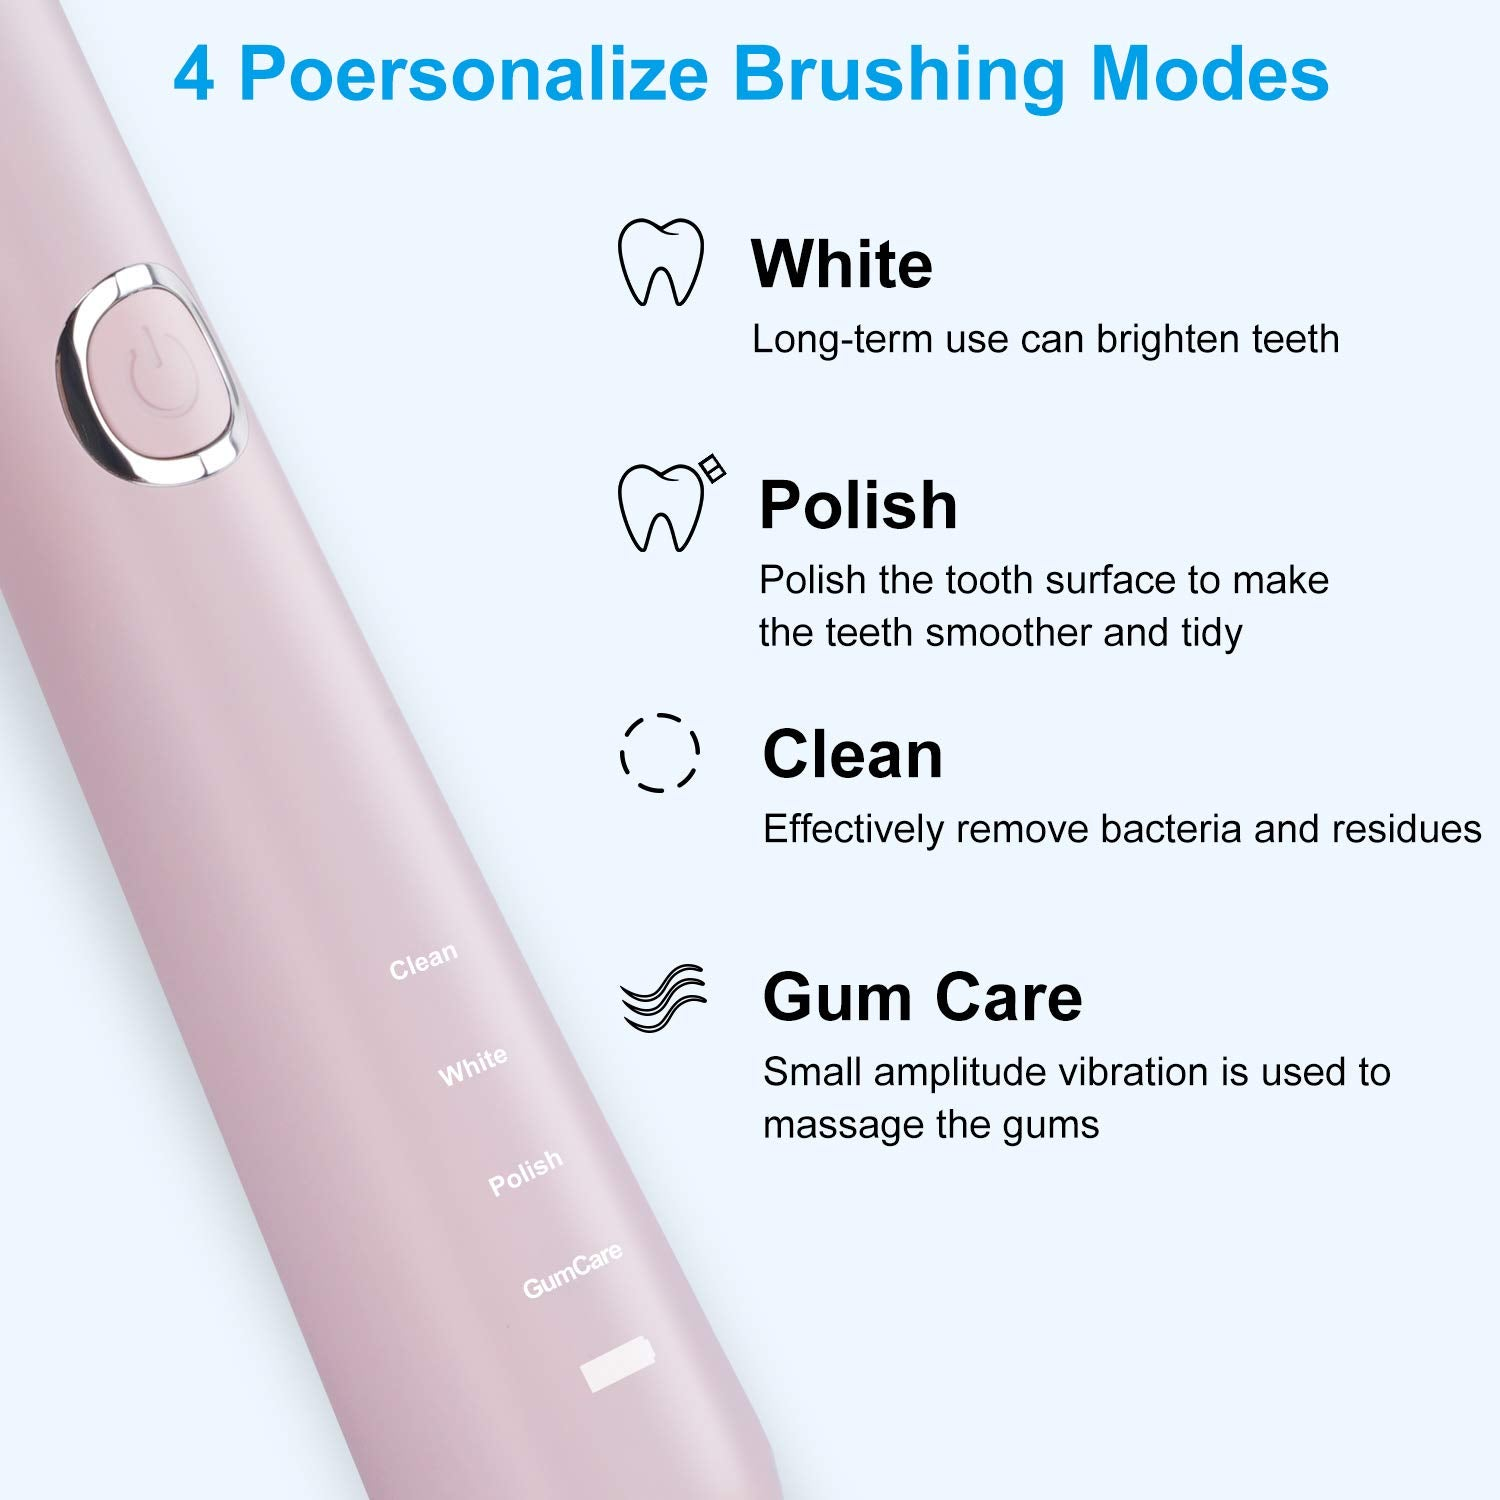 Sonic Electric Toothbrush, USB Rechargeable Toothbrush, Adult Electric Toothbrush with Holder and 2 Replacement Heads, 4 Modes with Automatic Timer (Pink)